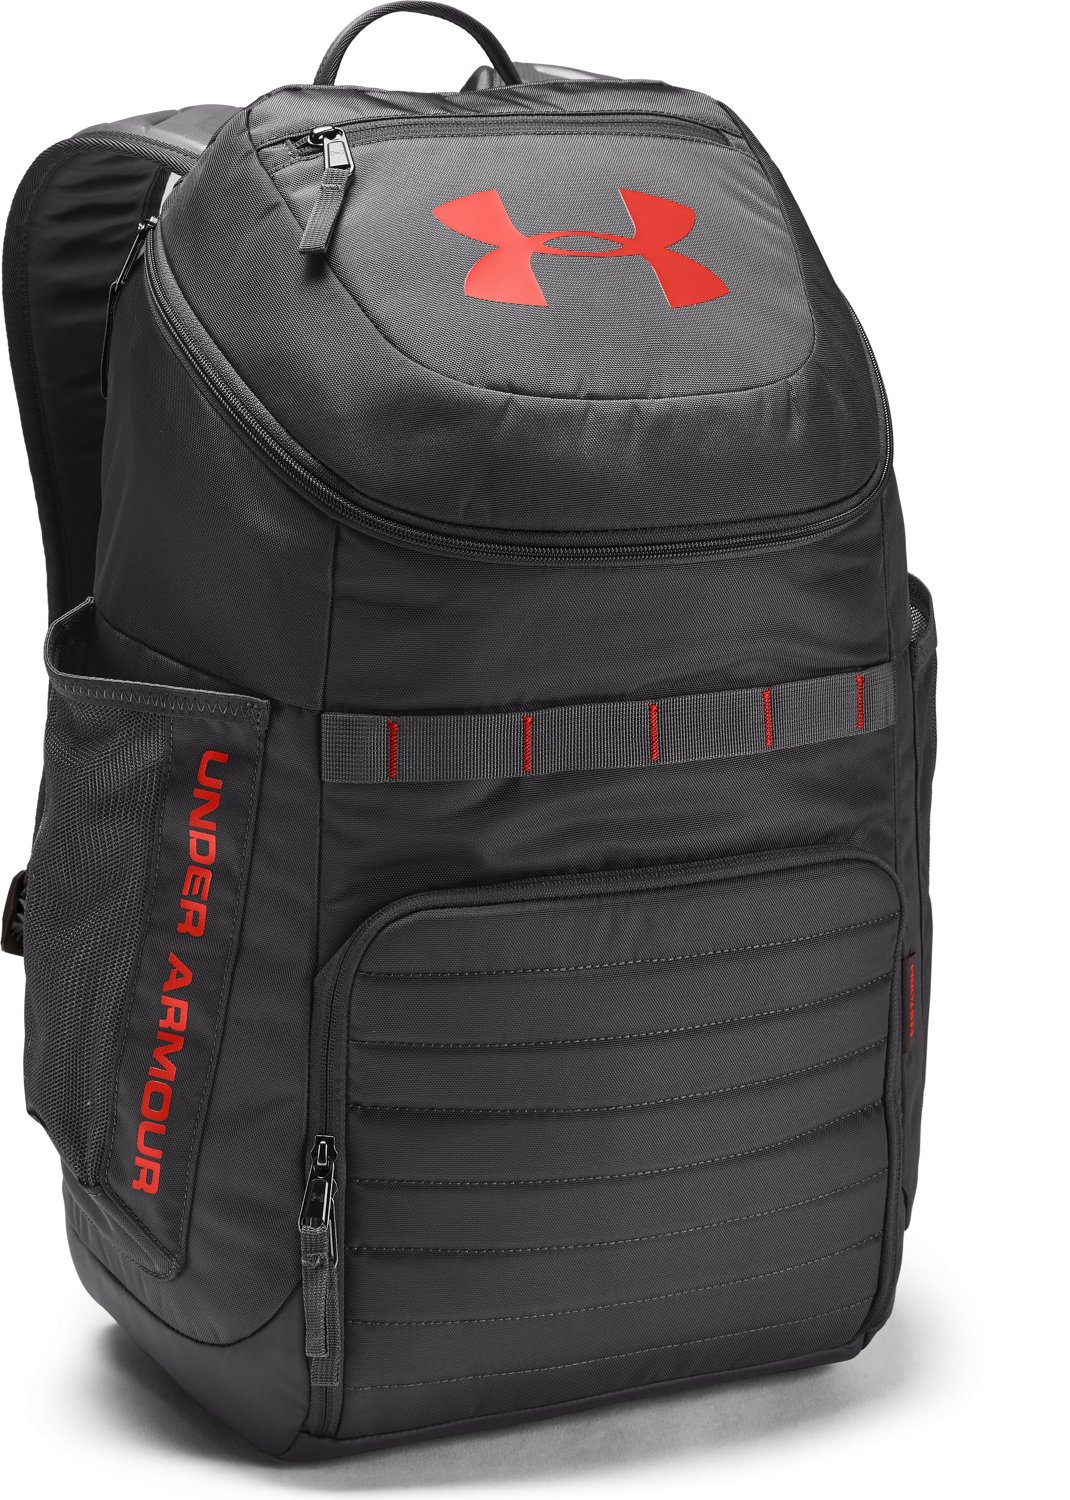 5127abd17b6d Display product reviews for Under Armour VX2-Undeniable Backpack